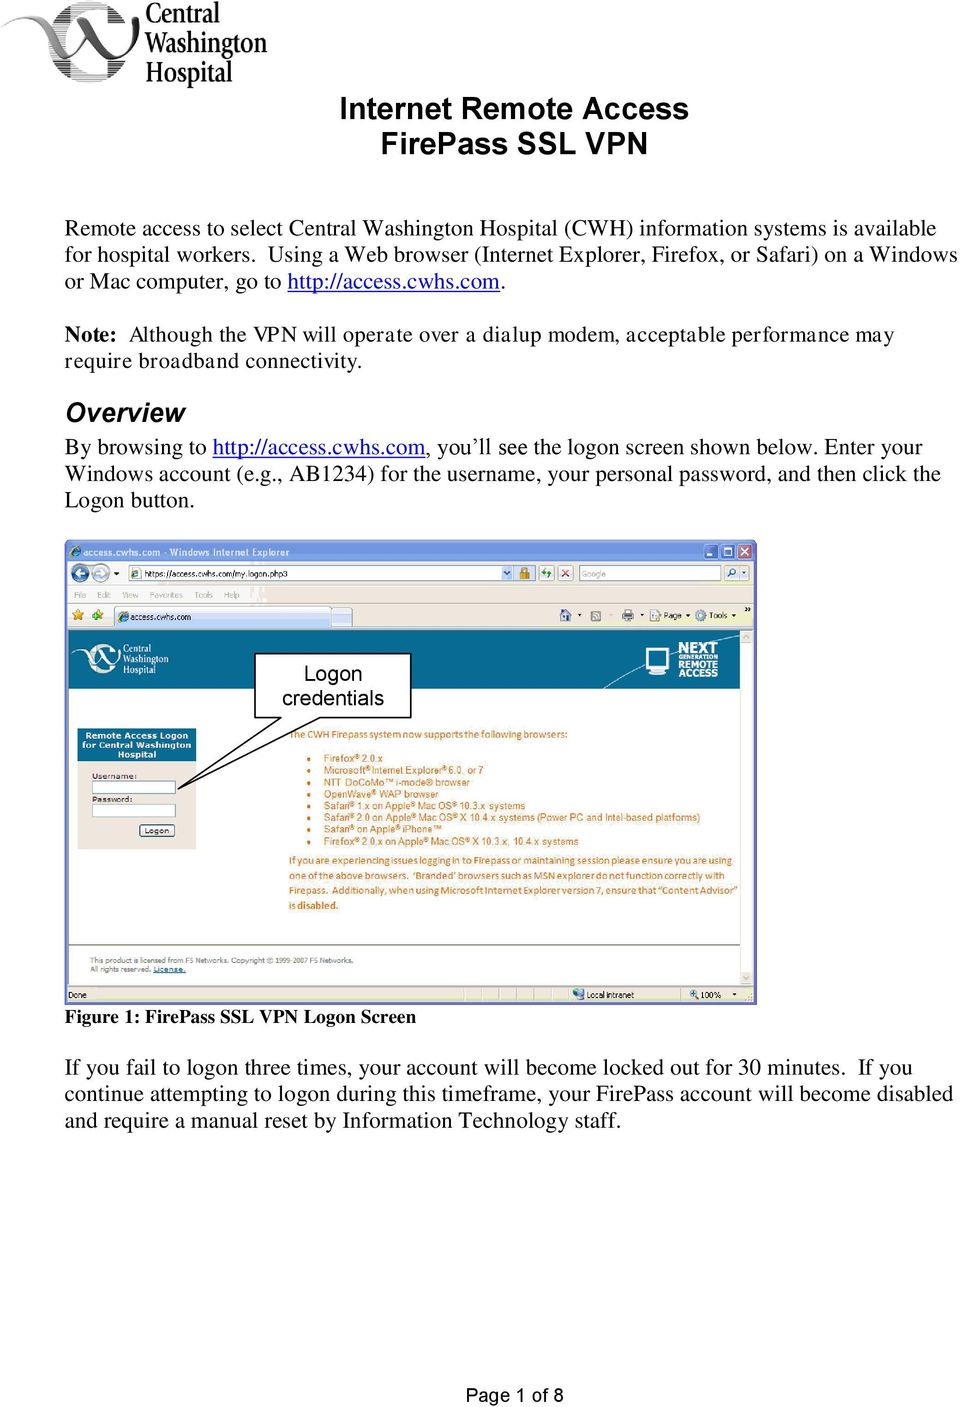 Overview By browsing to http://access.cwhs.com, you ll see the logon screen shown below. Enter your Windows account (e.g., AB1234) for the username, your personal password, and then click the Logon button.